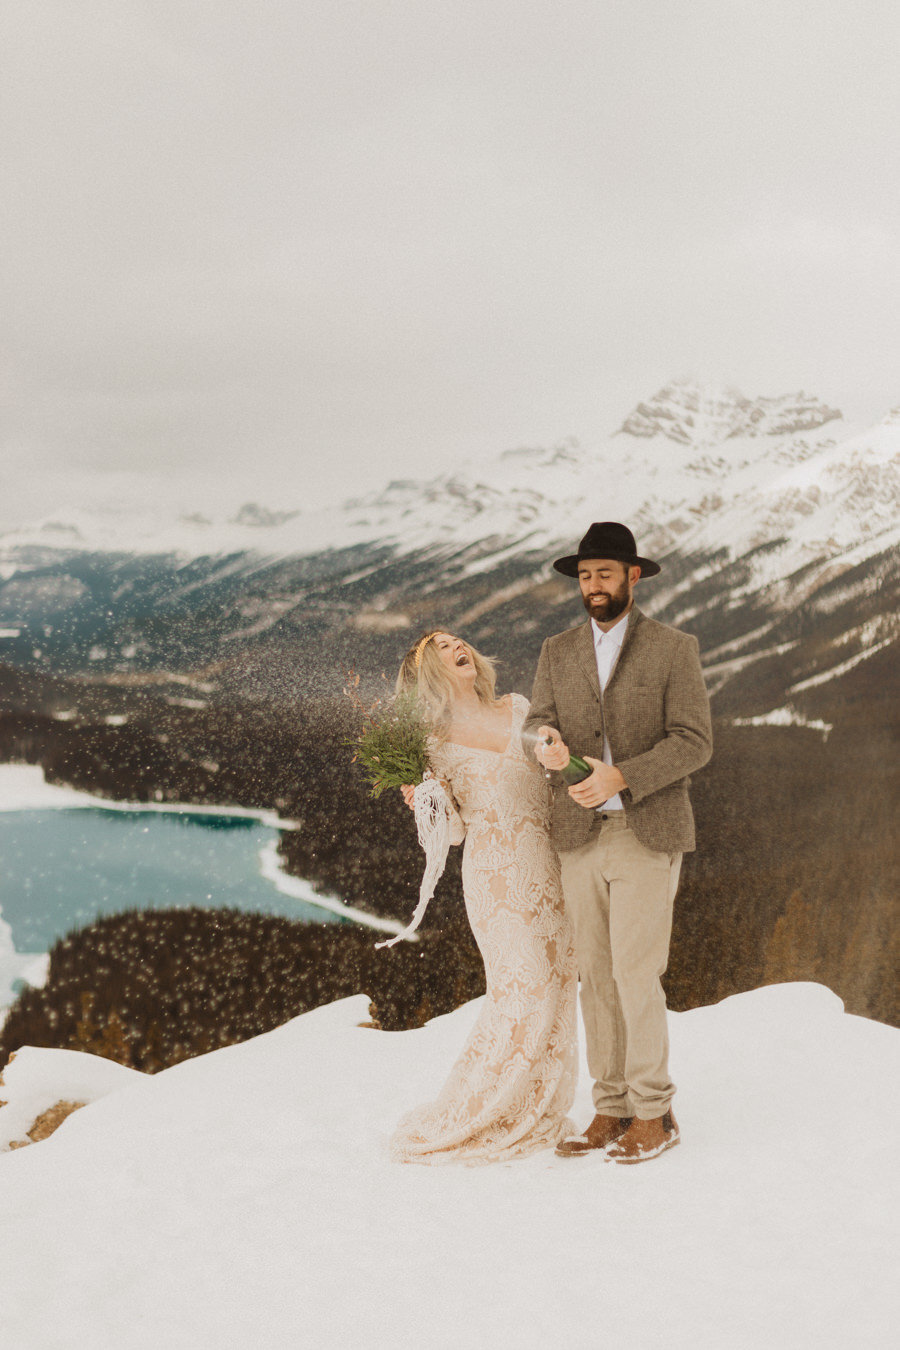 liv_hettinga_photography_peyto_lake_elopement-9